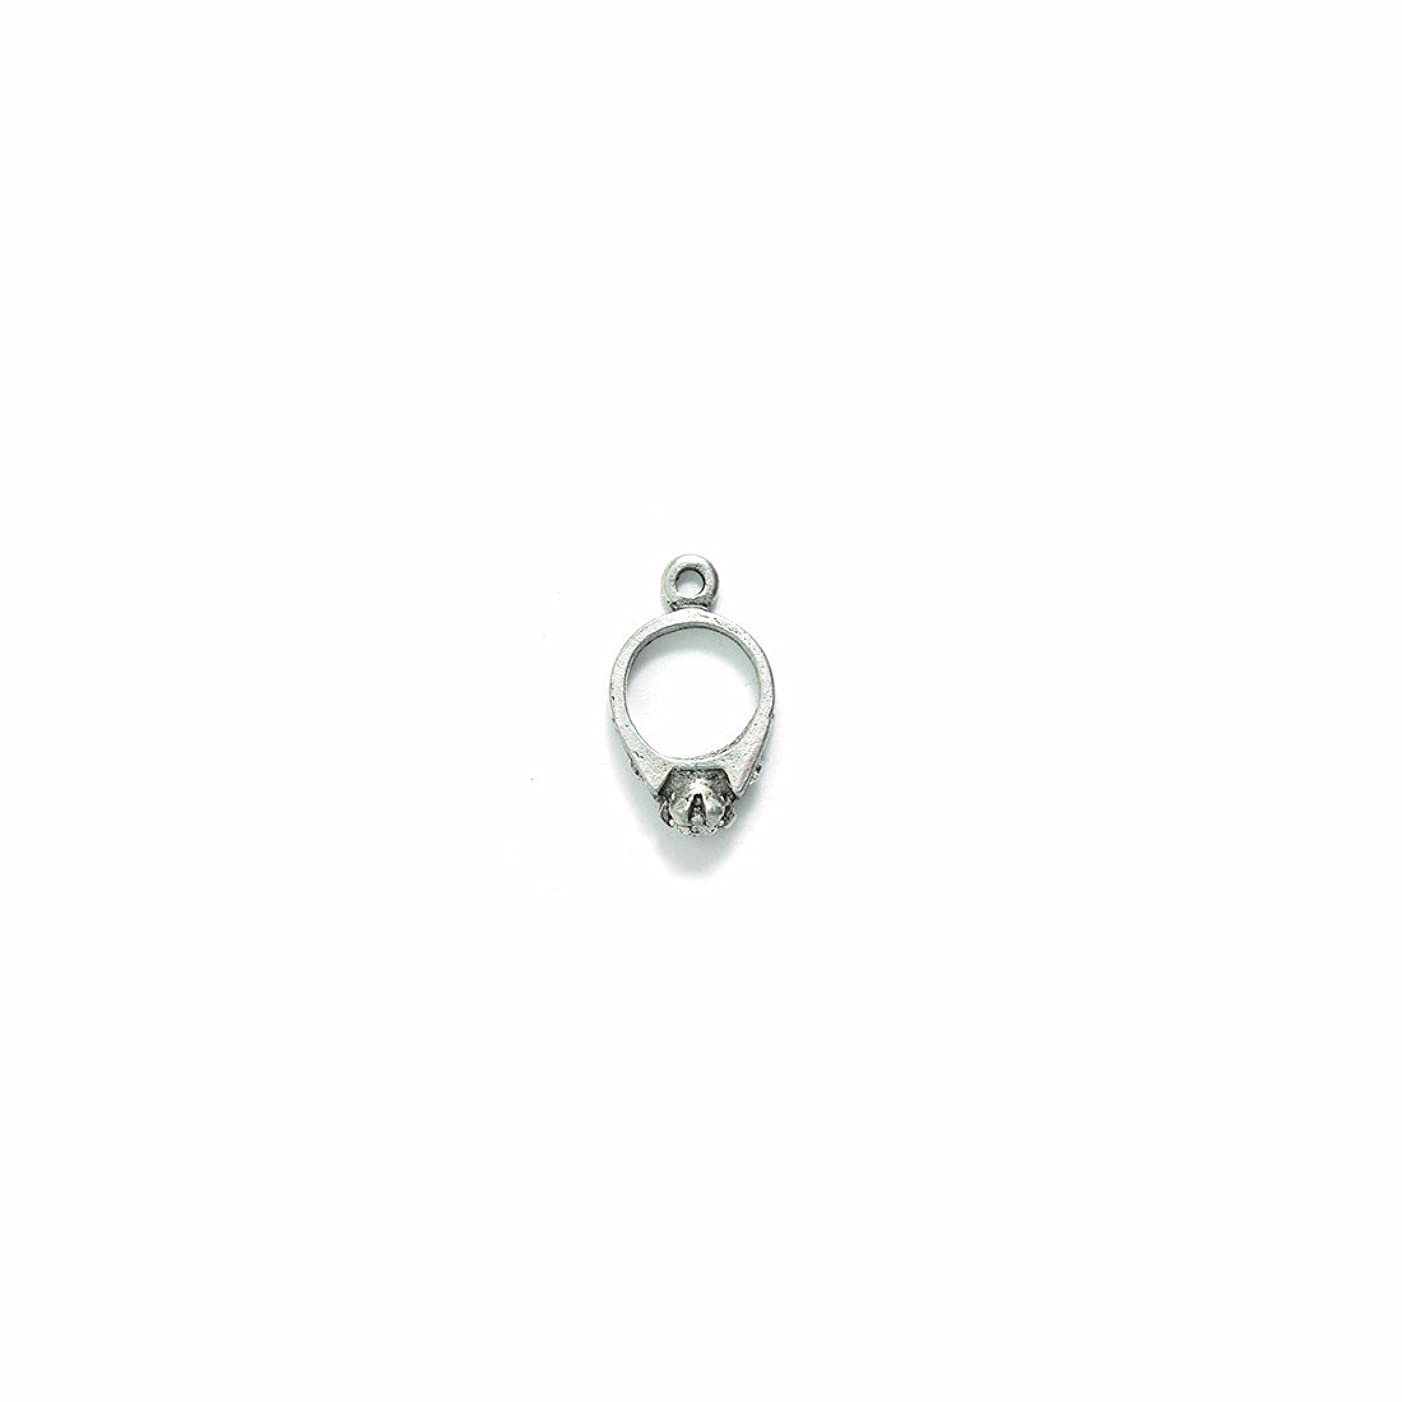 Shipwreck Beads Pewter Engagement Ring Charm, Silver, 12 by 20mm, 5-Piece